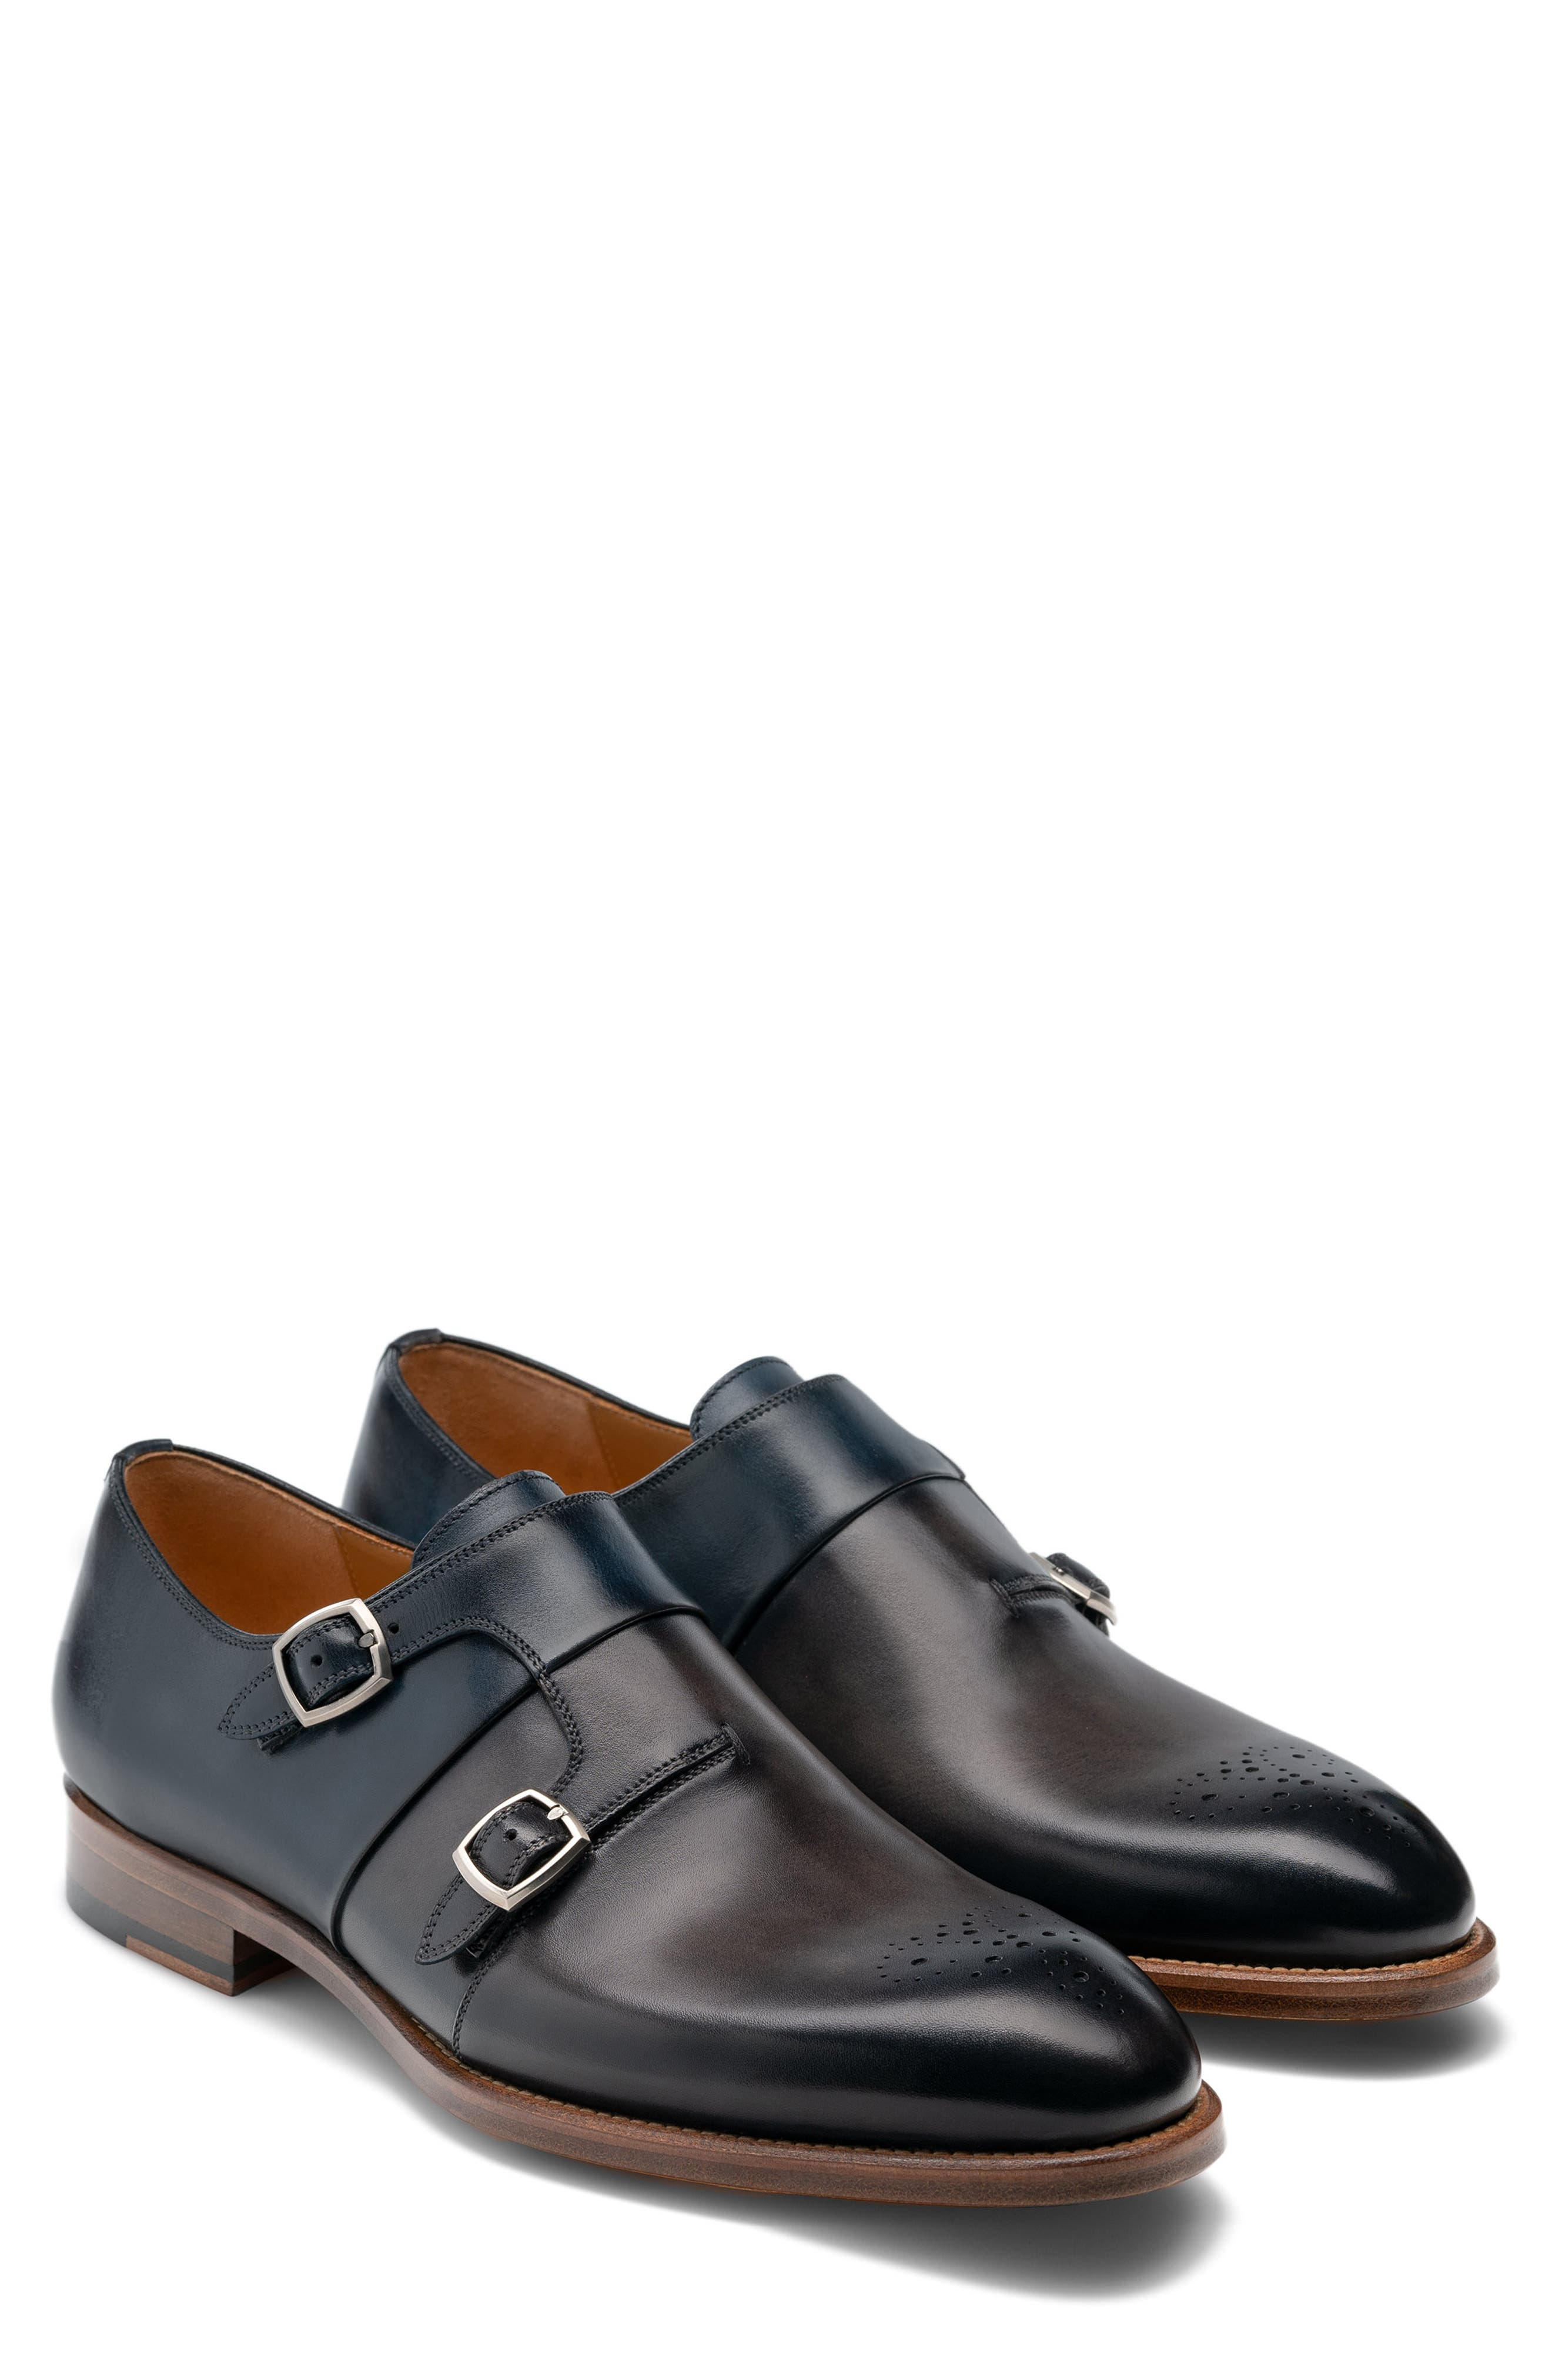 Burnished Italian leather elevates a rich Spanish monk shoe built with Diversa comfort technology that uses multiple air channels for cushioned arch support. Style Name: Magnanni Maurici Diversa Monk Strap Shoe (Men). Style Number: 5945078 1. Available in stores.